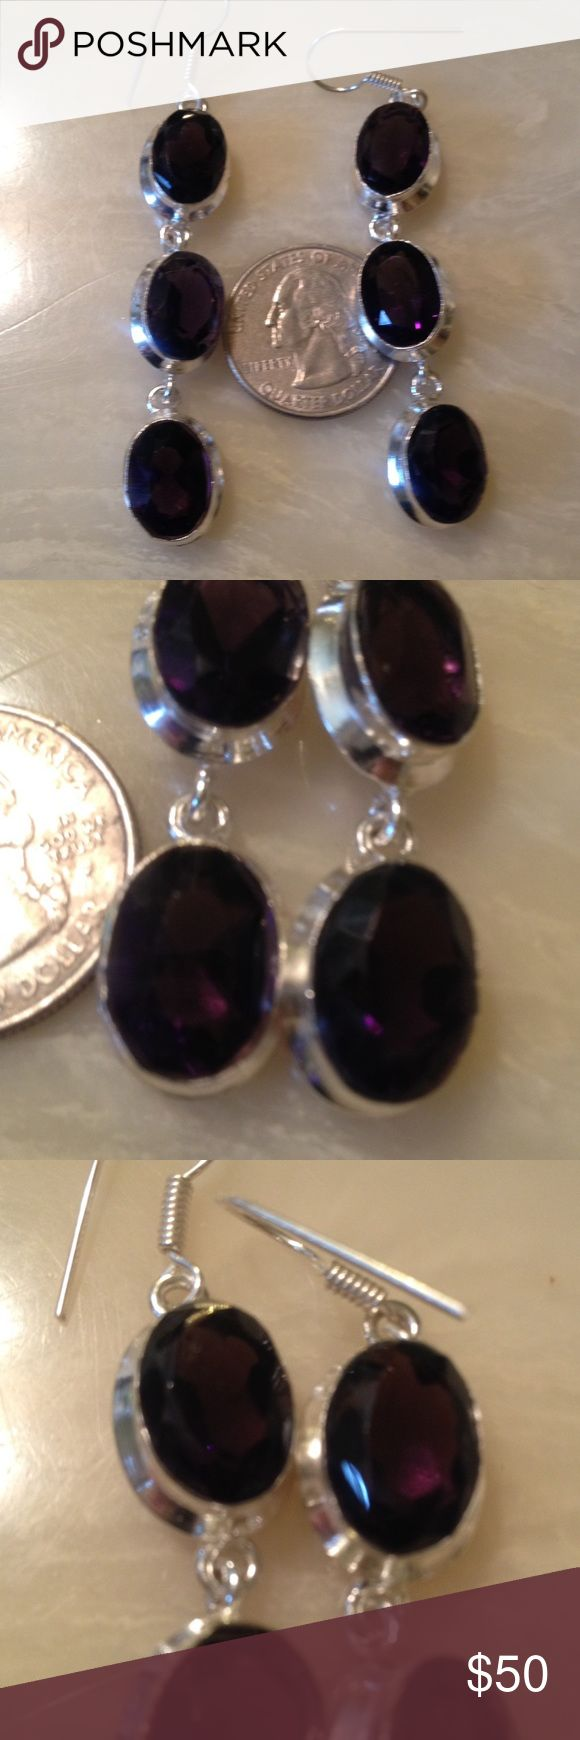 Sterling Silver Amethyst Earrings Gorgeous Sterling Silver Amethyst Earrings. Huge Dark Purple stones. Can see from pics next to quarter how big they are. Dangle style. I am currently offering a Jewelry Gift with Purchase. Buy 3 Jewelry items at listed price and I will include a great pair of Sterling Silver Dark Rainbow topaz earring. Can be seen in last pic. 😻 Jewelry Earrings